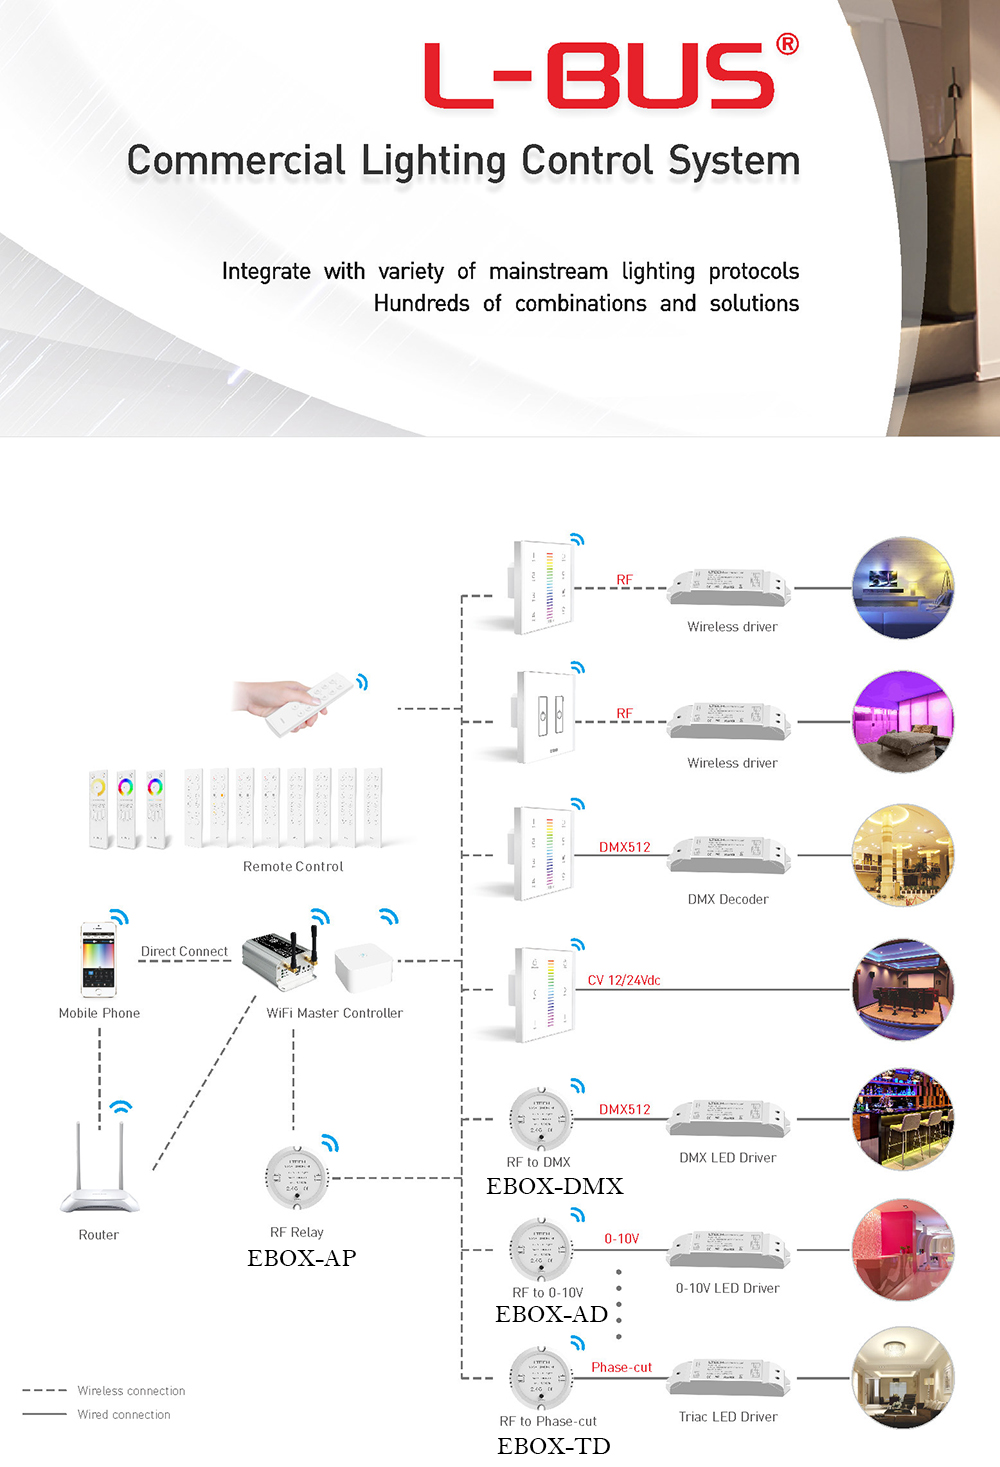 Nieuwe WiFi 106 LED wifi controller met F12 RF afstandsbediening; 2.4GHz Draadloze Ontvanger, touch panel Led RGB strip Verlichting Controle Systeem - 4